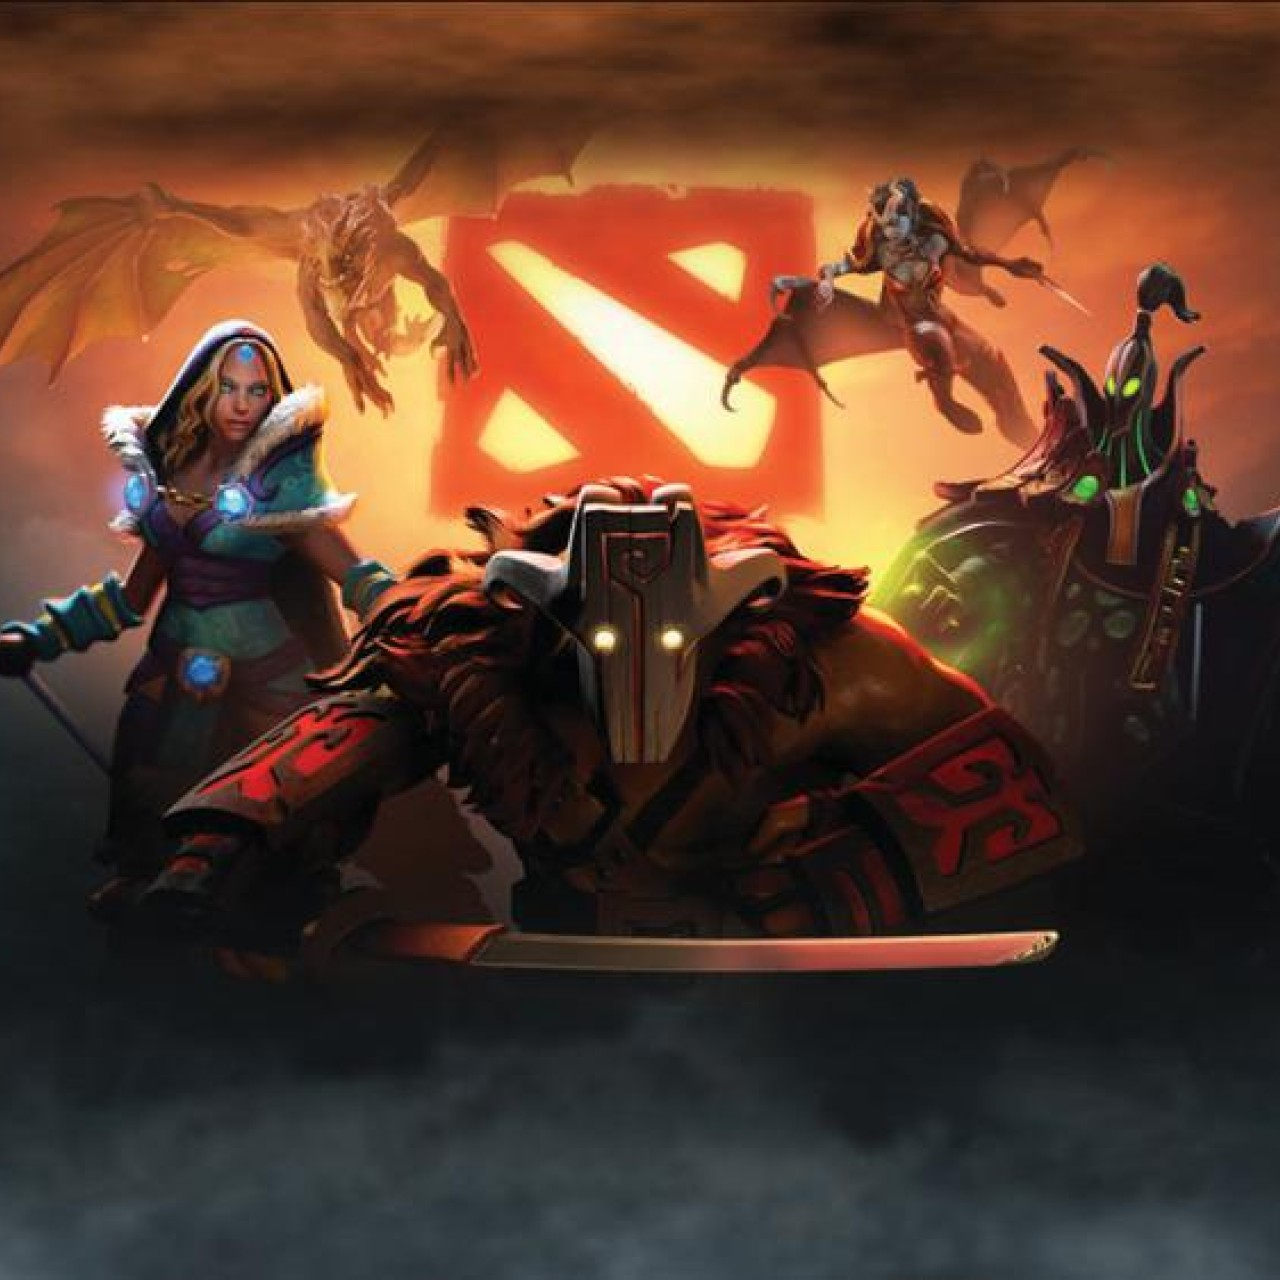 Like League Of Legends Played With Greek Gods Defense Of The